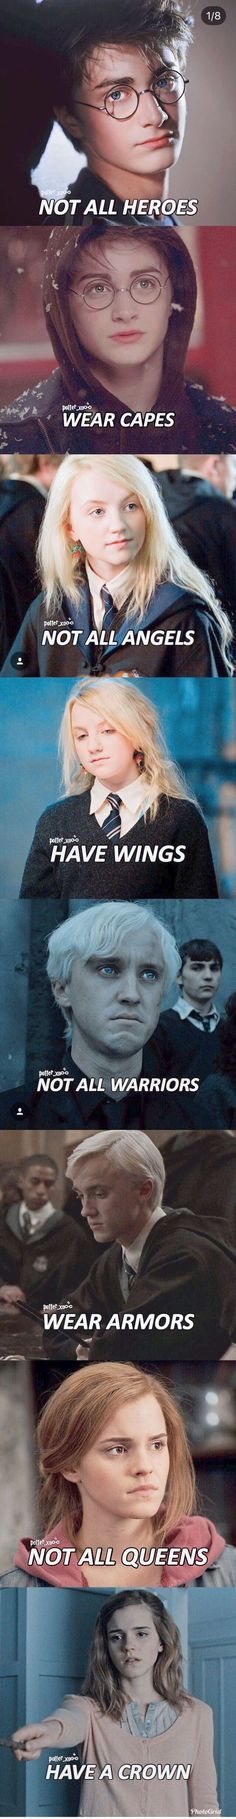 Yep, it's under Harry Potter funny! Bc Draco (as much as I love him) he ain'… Yep, it's under Harry Potter funny! Bc Draco (as much as I love him) he ain'…,Hogwarts/Harry Potter/…❤️⚡️ Yep,. Harry Potter Tumblr, Harry Potter World, Estilo Harry Potter, Mundo Harry Potter, Harry Potter Pictures, Harry Potter Spells, Harry Potter Jokes, Harry Potter Cast, Harry Potter Characters